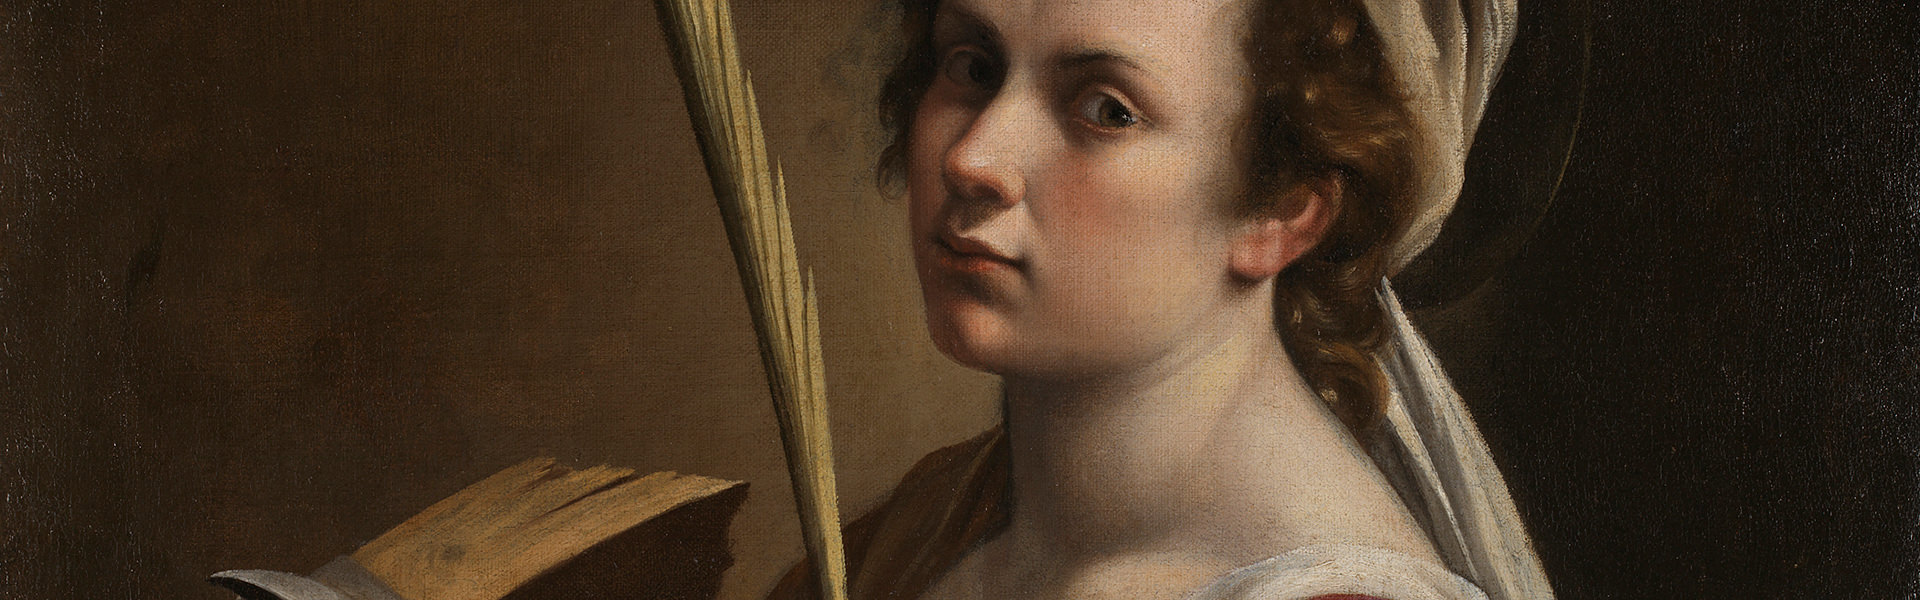 Artemisia Gentileschi, Self Portrait as Saint Catherine of Alexandria, about 1615-17. © The National Gallery, London